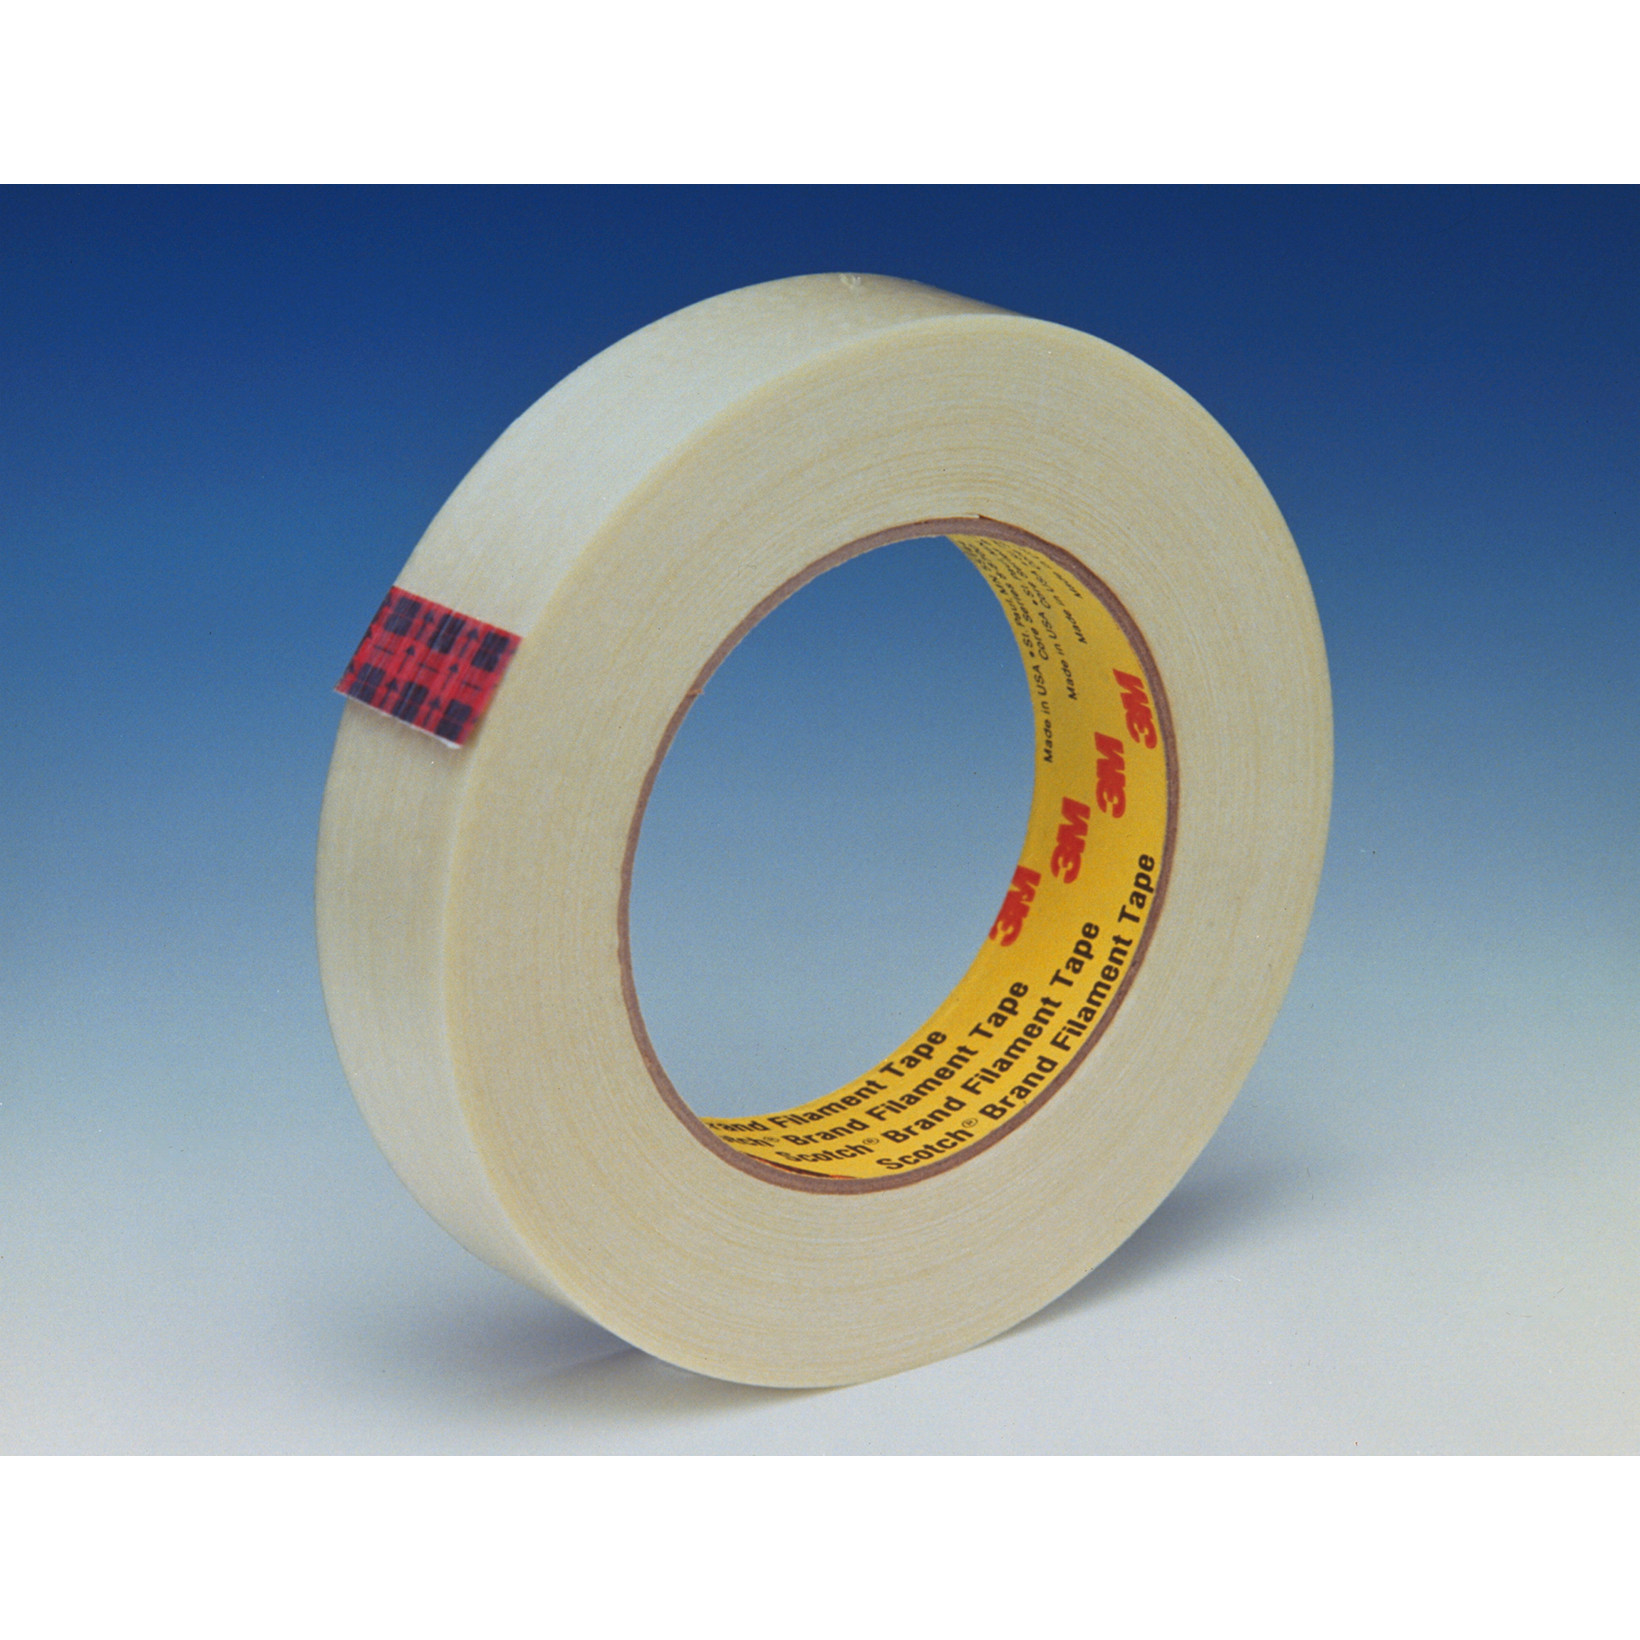 Tape 3M 895 fiberarmer Scotch 25mmx50m 36rl/kar